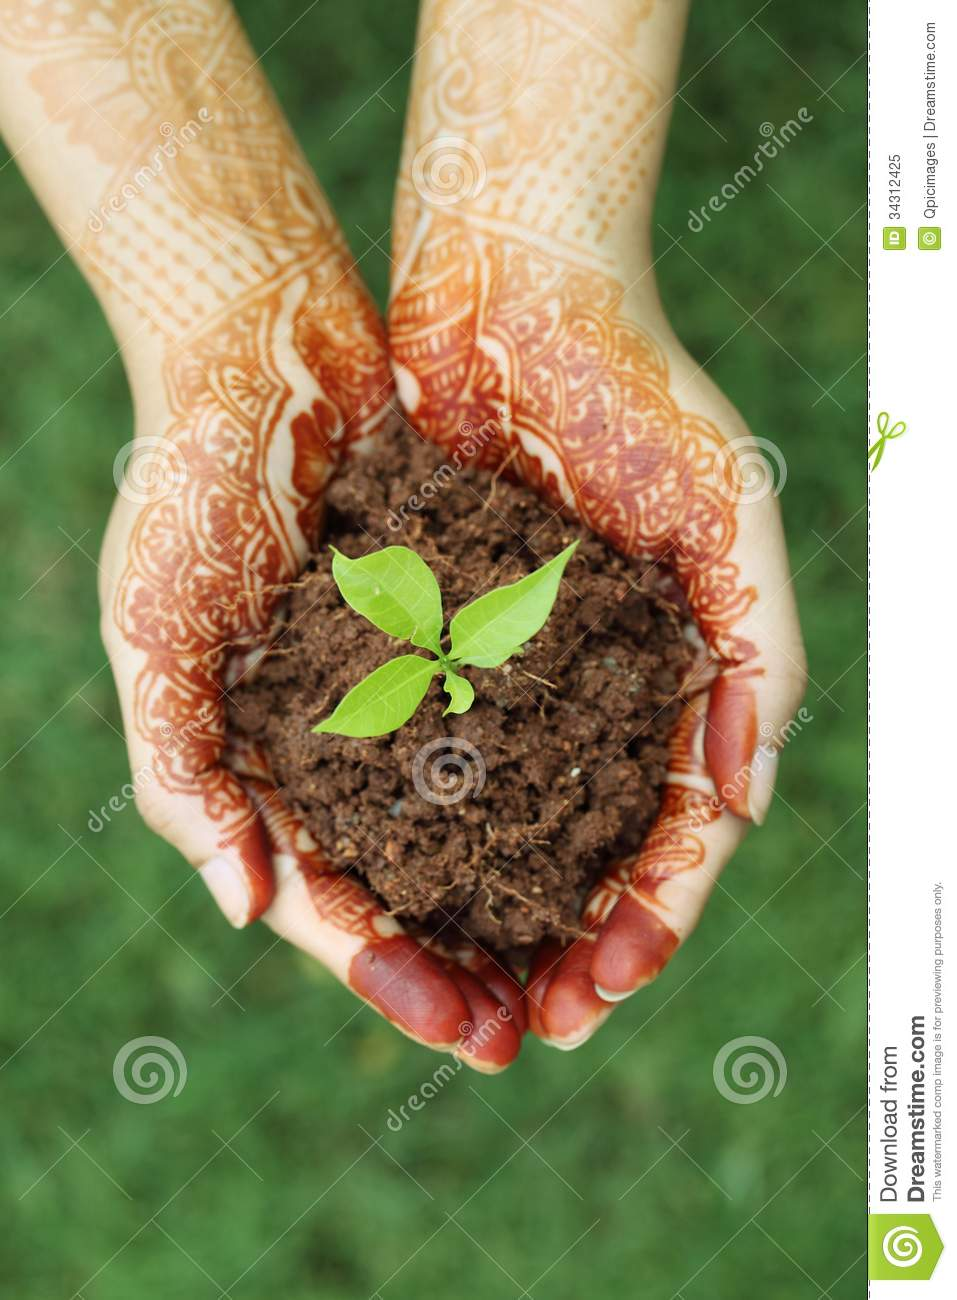 Hands Holding Small Plant New Life Stock Image Image Of Leaf